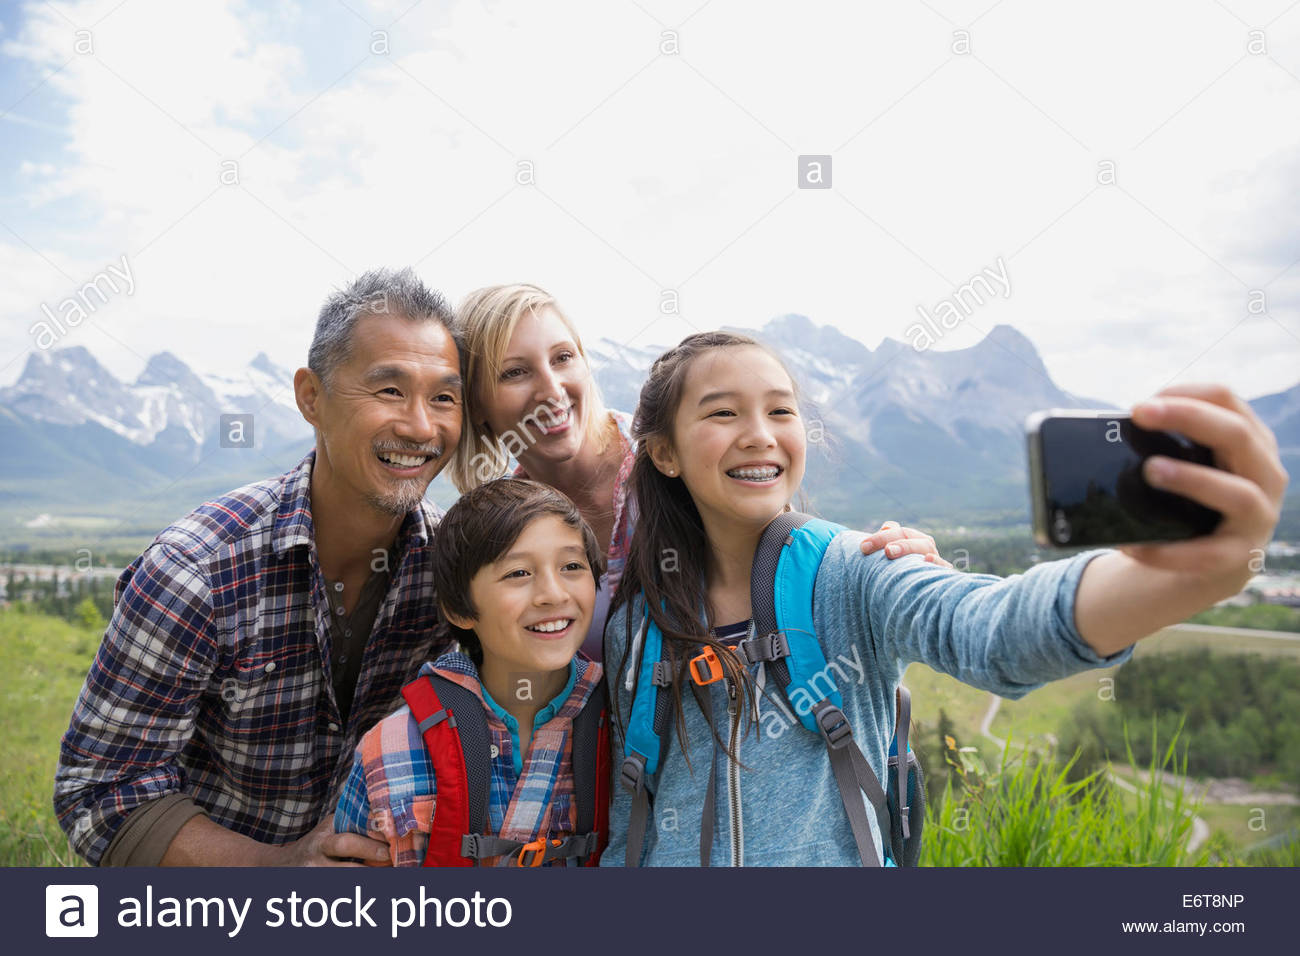 Family taking cell phone picture on rural hillside - Stock Image